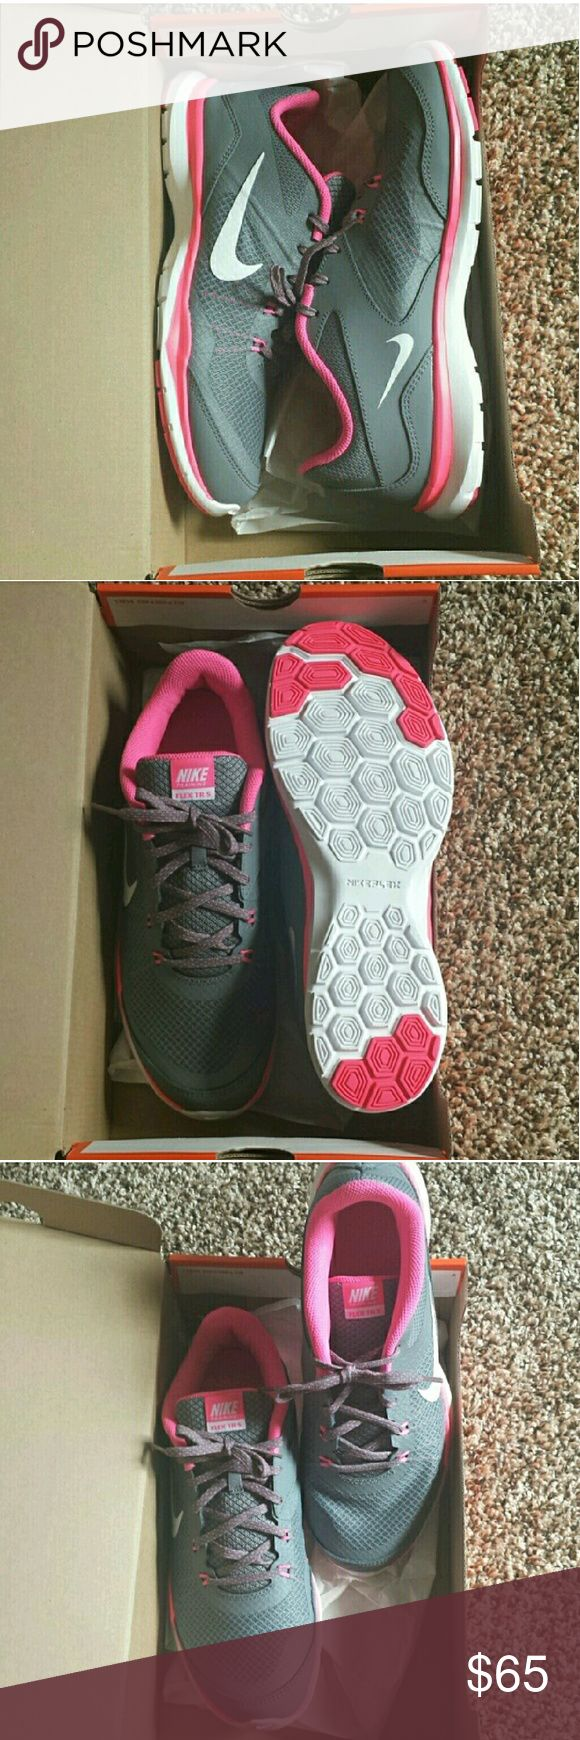 Nike Shoes Nike Flex Womens Sport Shoes. Size 10 Womens. Brand New!! NEVER WORN! Nke Shoes Athletic Shoes